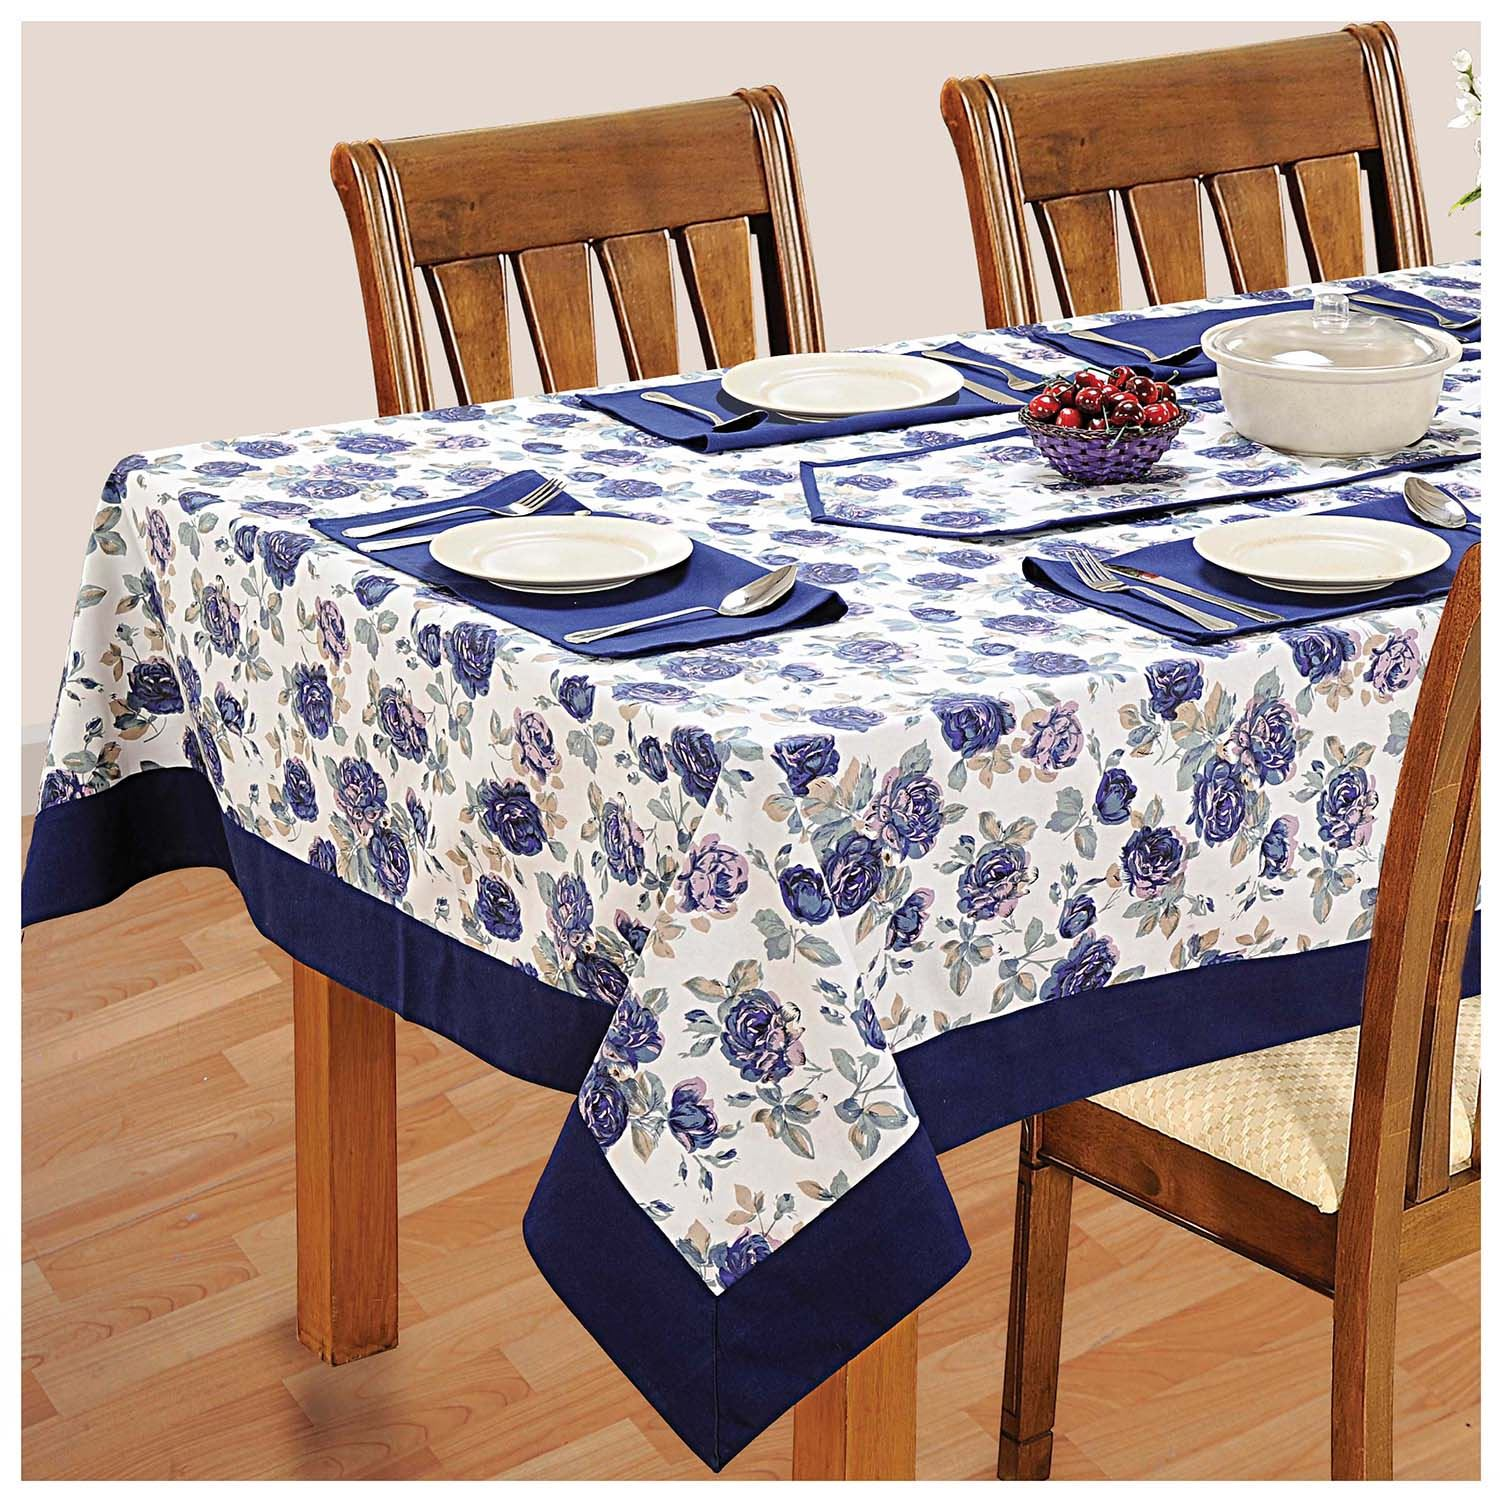 6 seater dinner party table linen set kitchen dining for Table 6 brunch